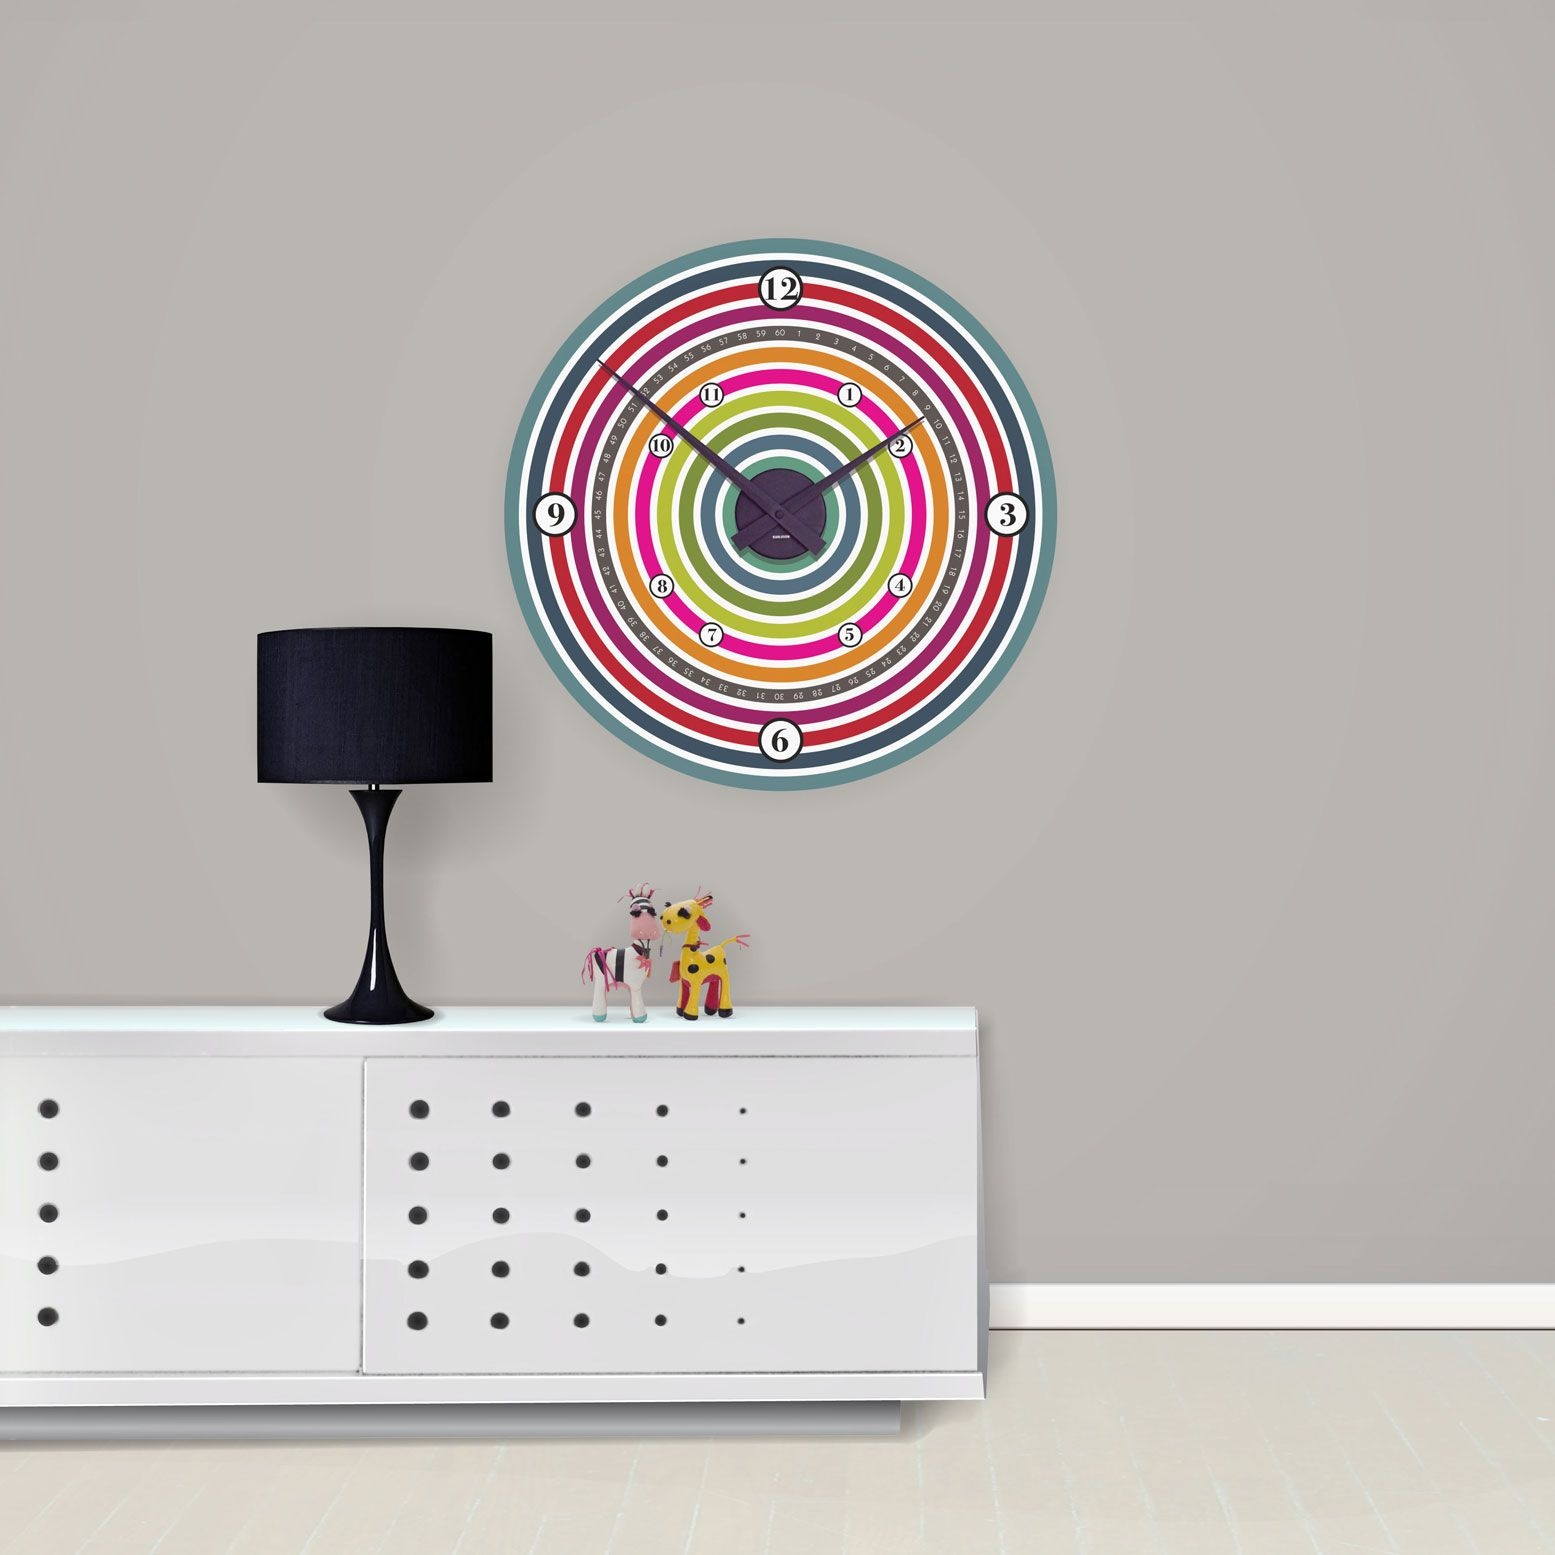 Colour Wheel Wall Clock: What A Great Stylish, Funky Large Retro Wall Clock  ! This Clock Is Guaranteed To Brighten Up Any Room And Wall With Its Multi  ...